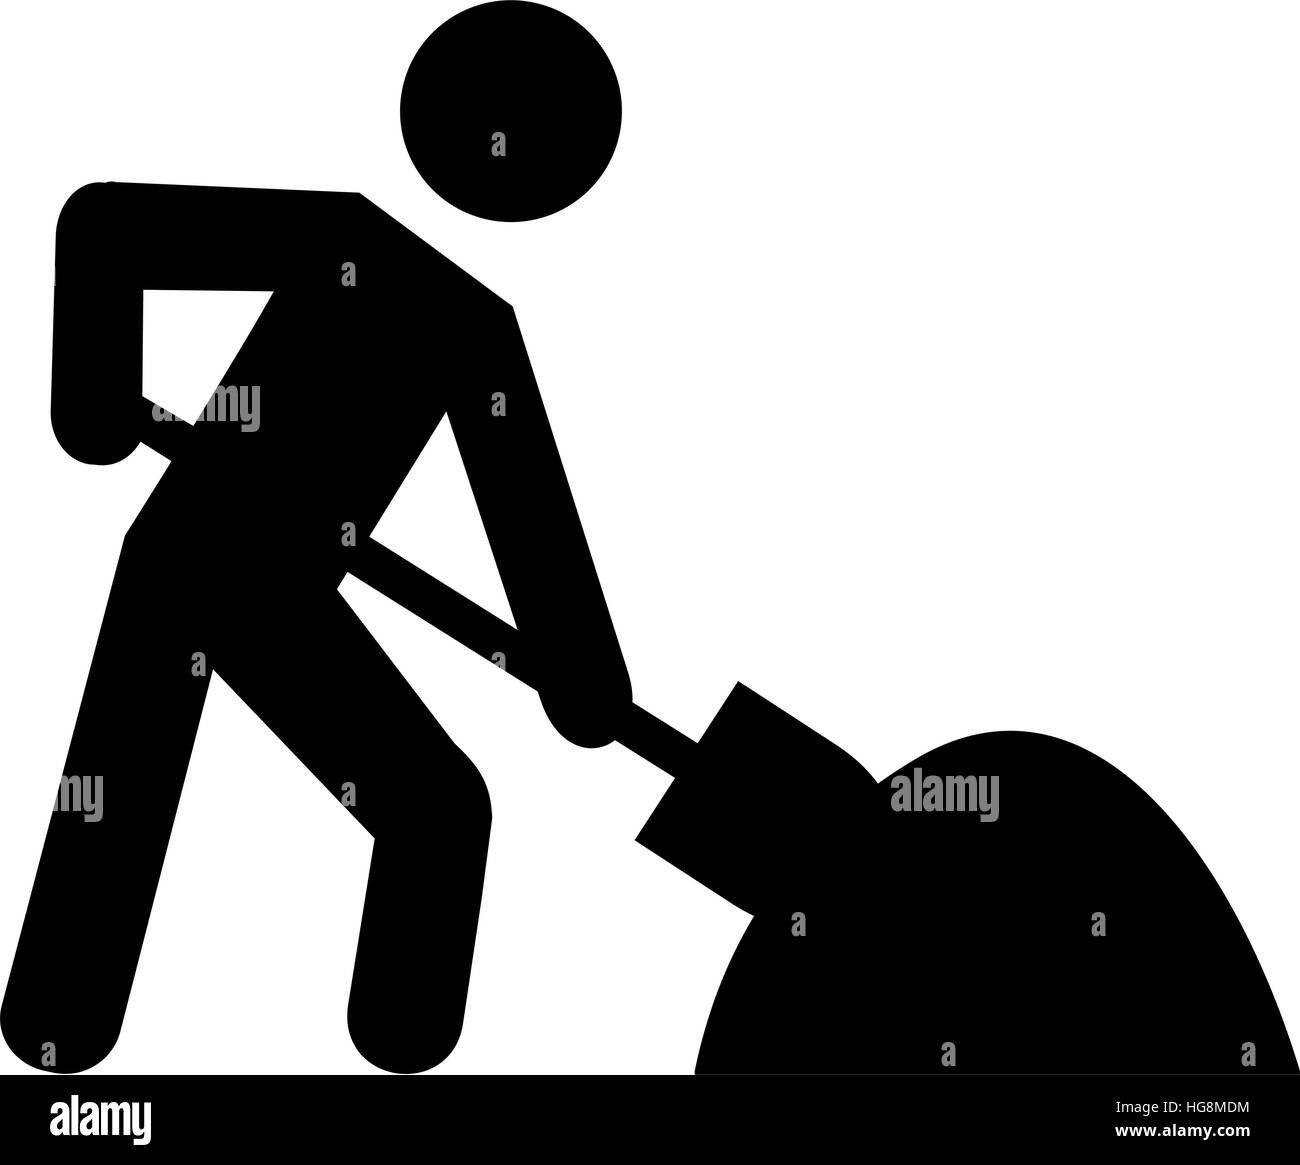 Construction shovel pictogram stock photos construction shovel man pictogram working with shovel stock image biocorpaavc Images